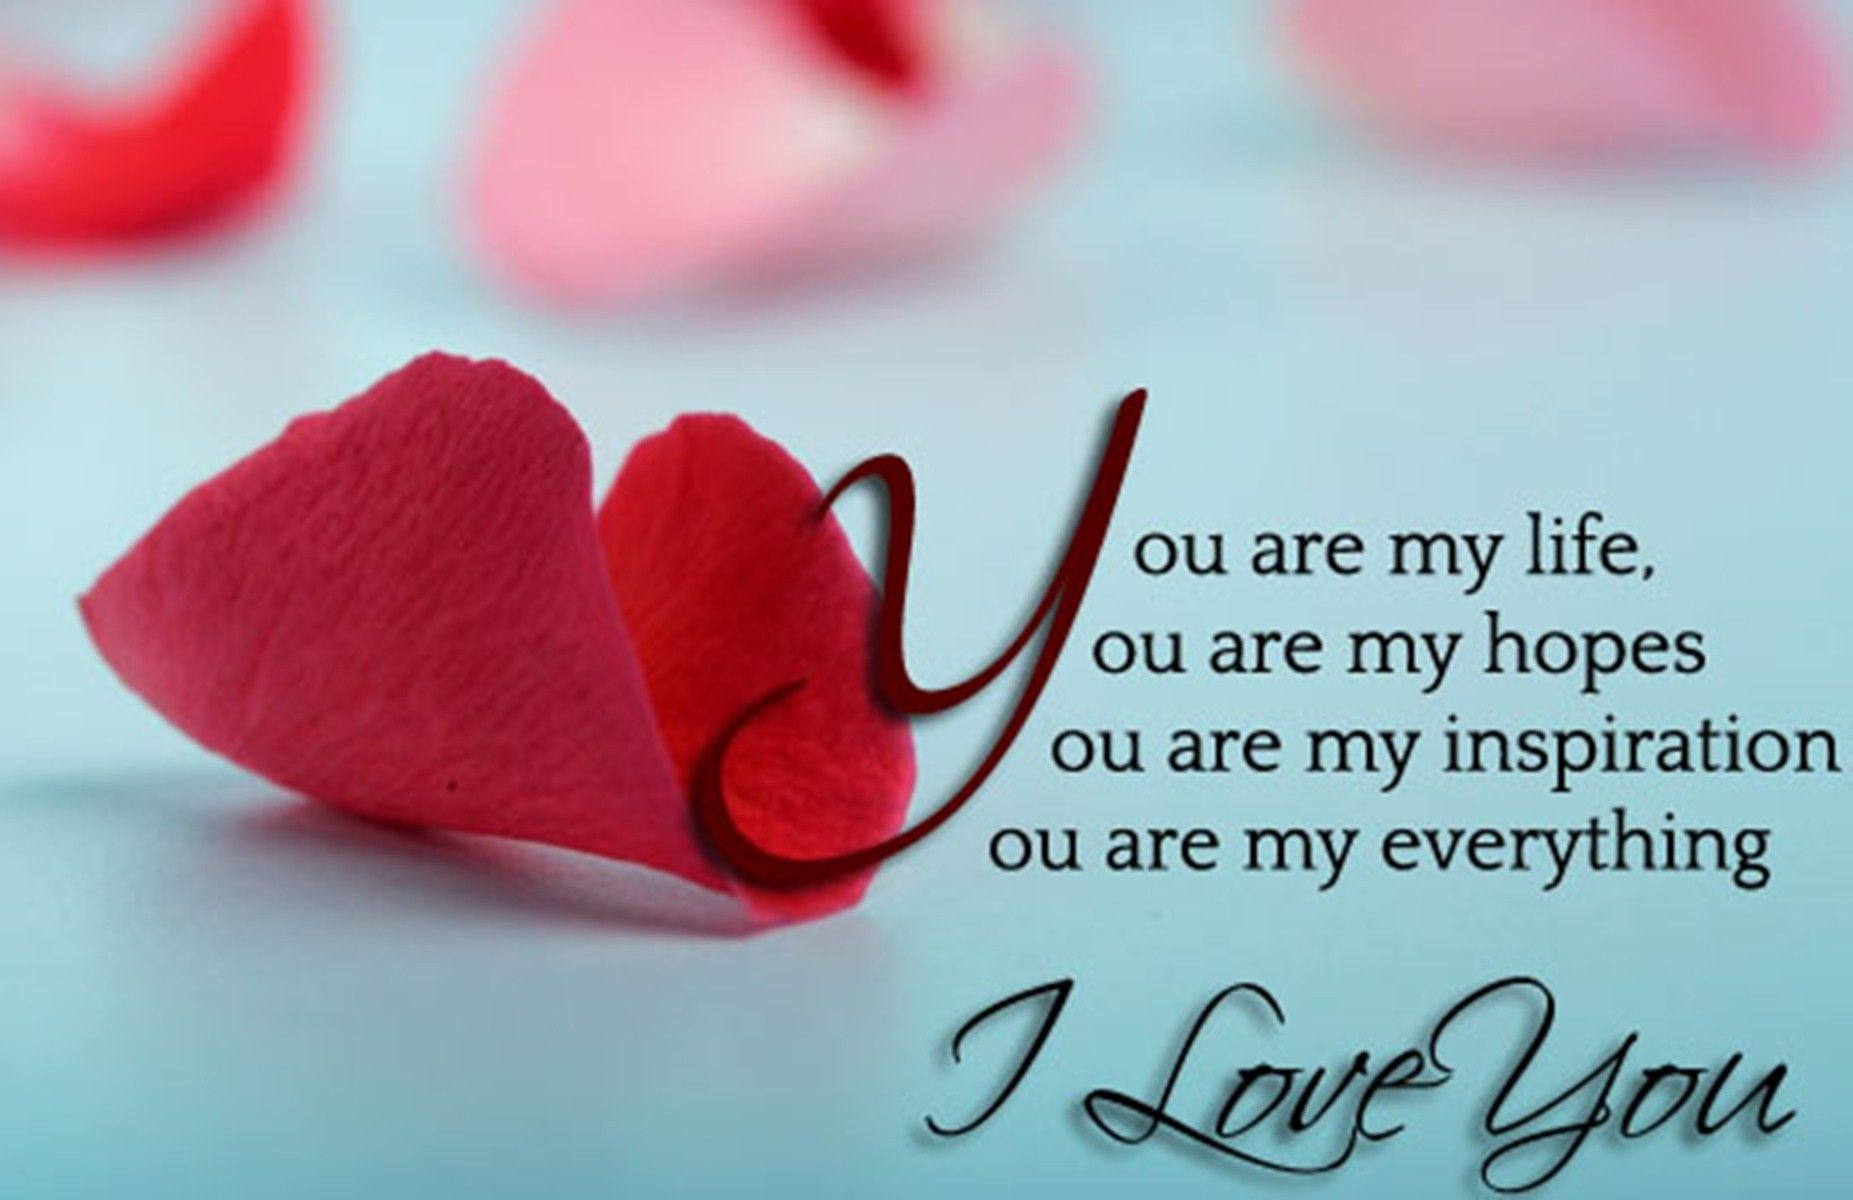 Love Quotes Wallpapers For Mobile: Love Quotes Wallpapers For Mobile Free Download Happy New